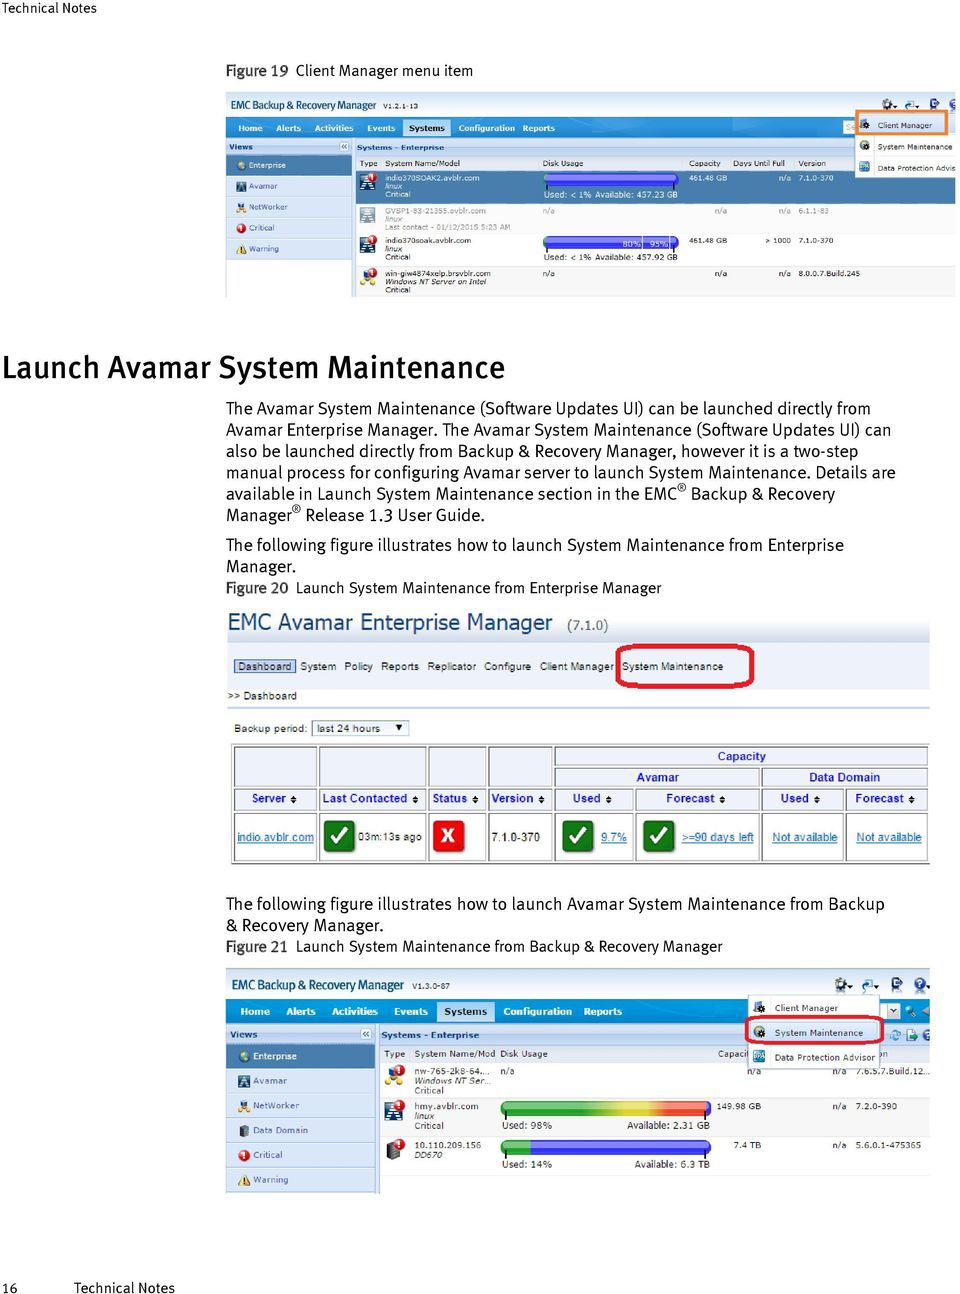 System Maintenance. Details are available in Launch System Maintenance section in the EMC Backup & Recovery Manager Release 1.3 User Guide.